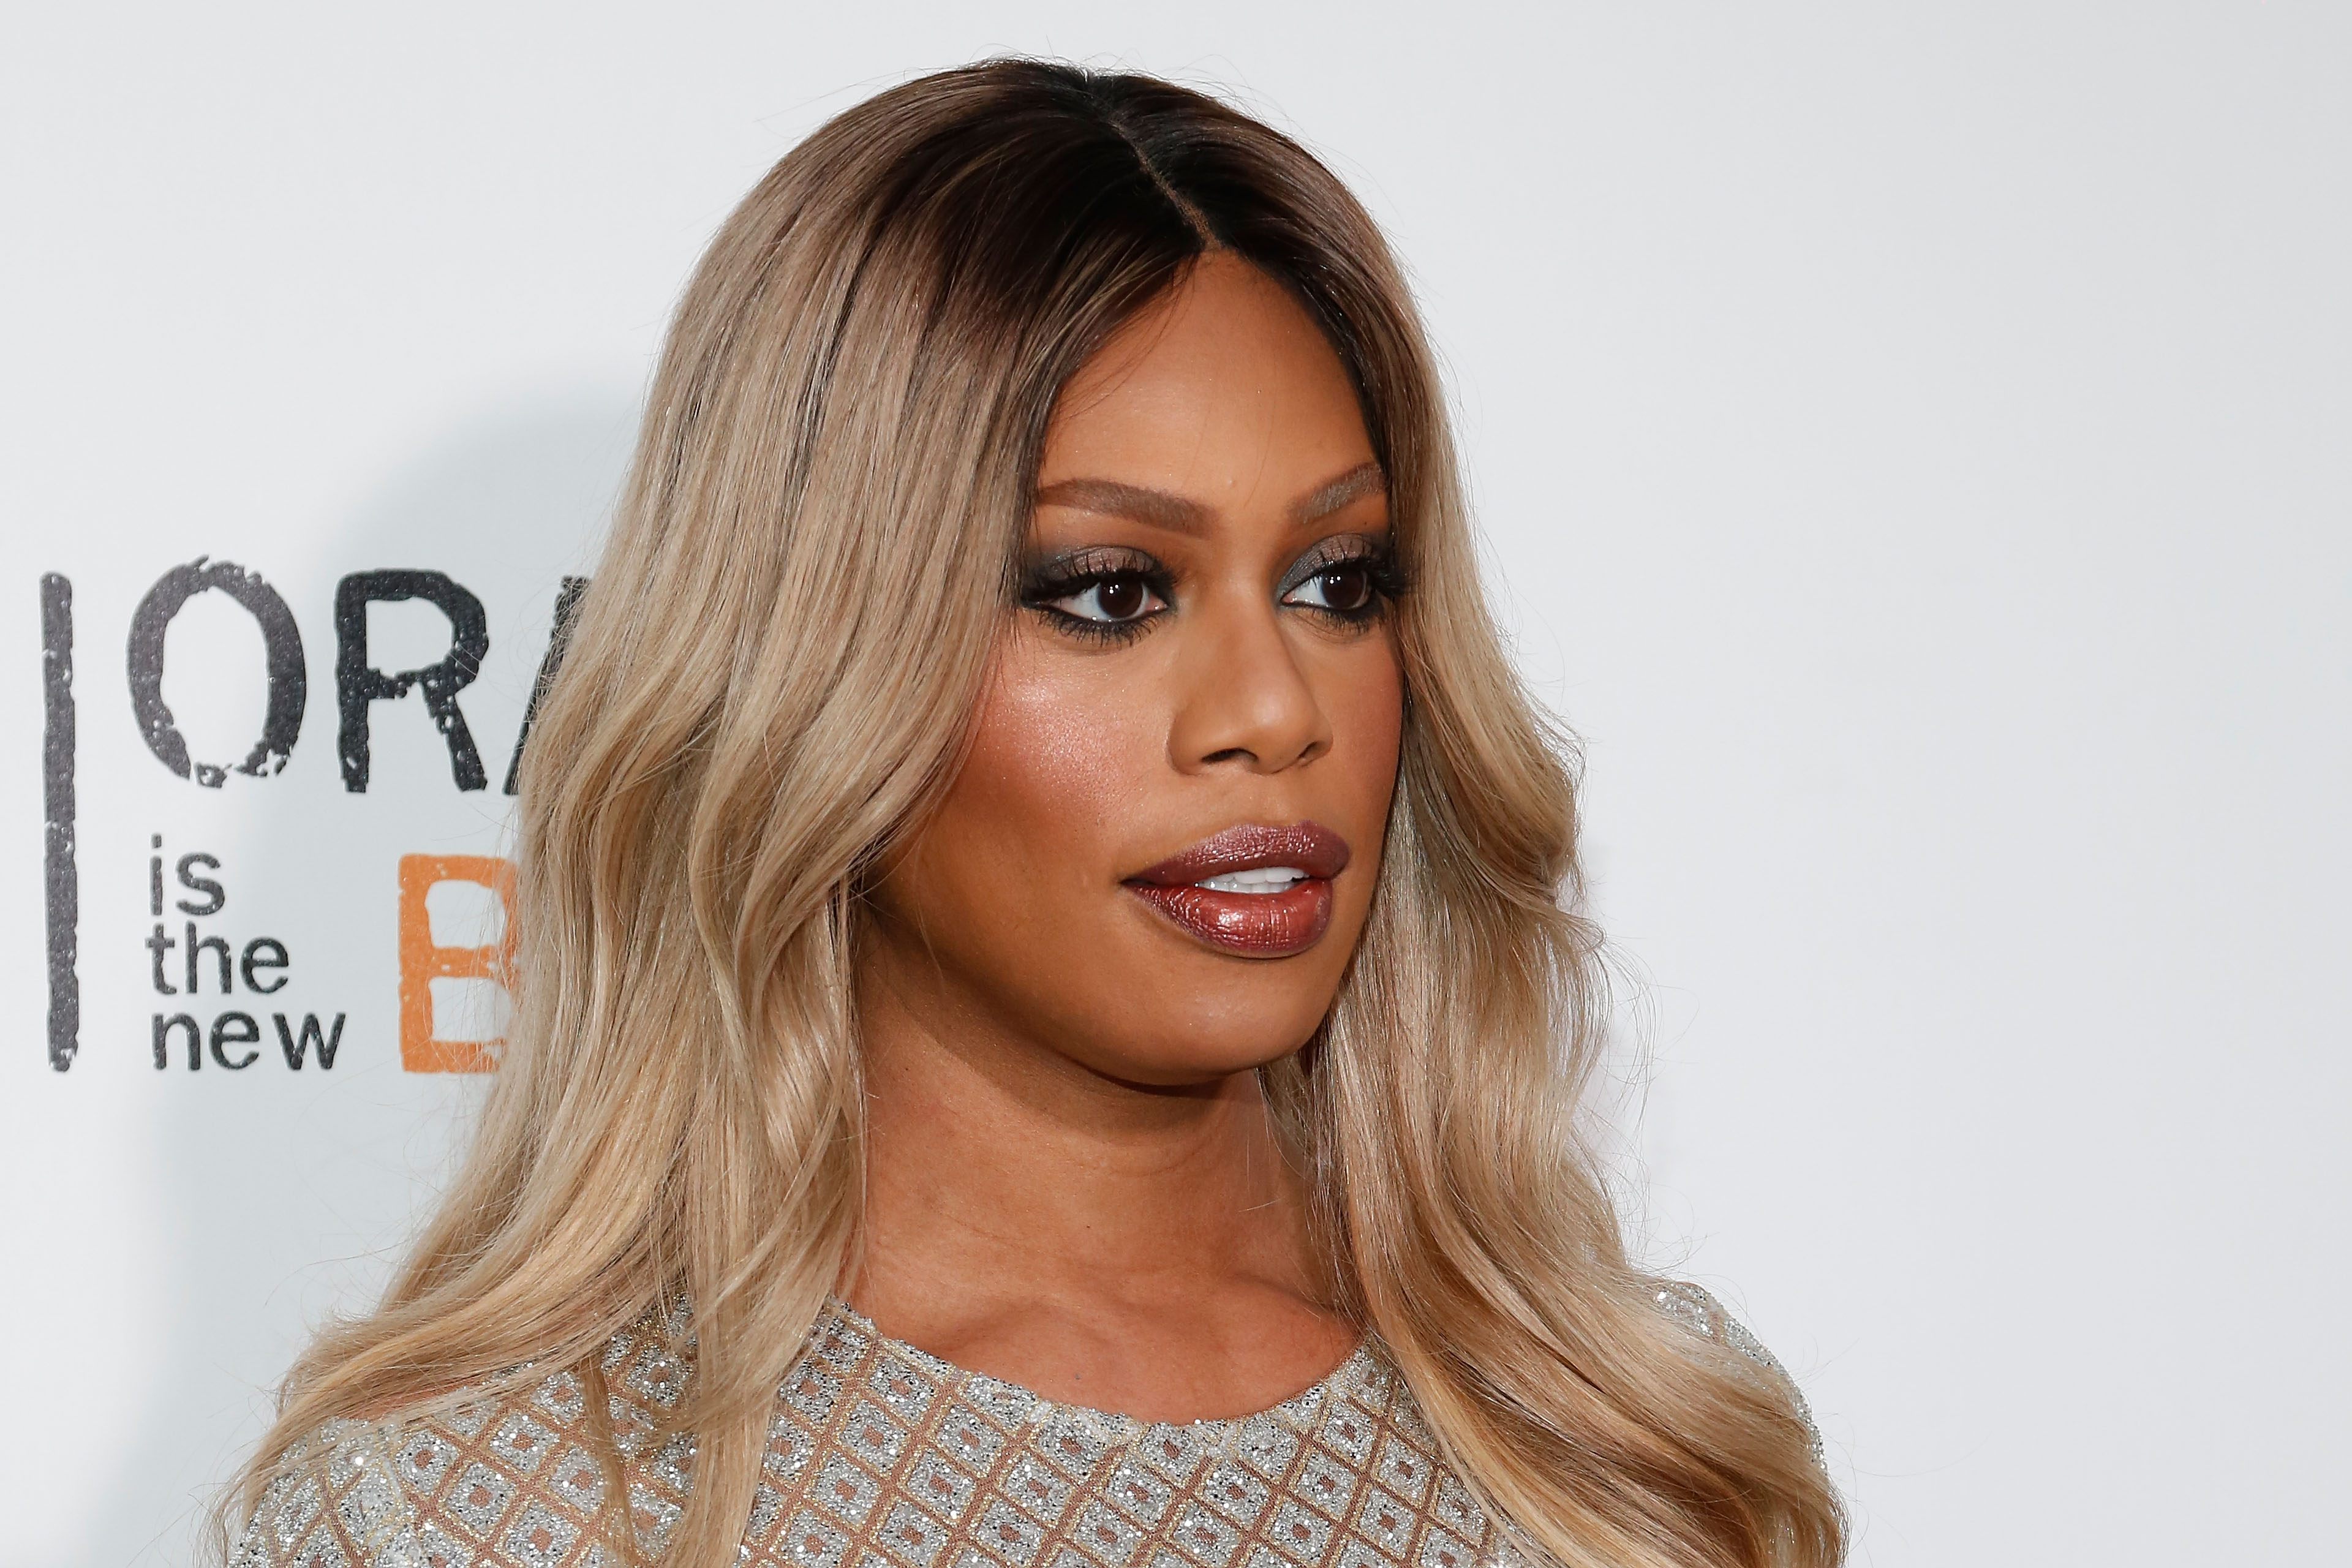 Laverne Cox posted this brilliant body-positive selfie on Instagram